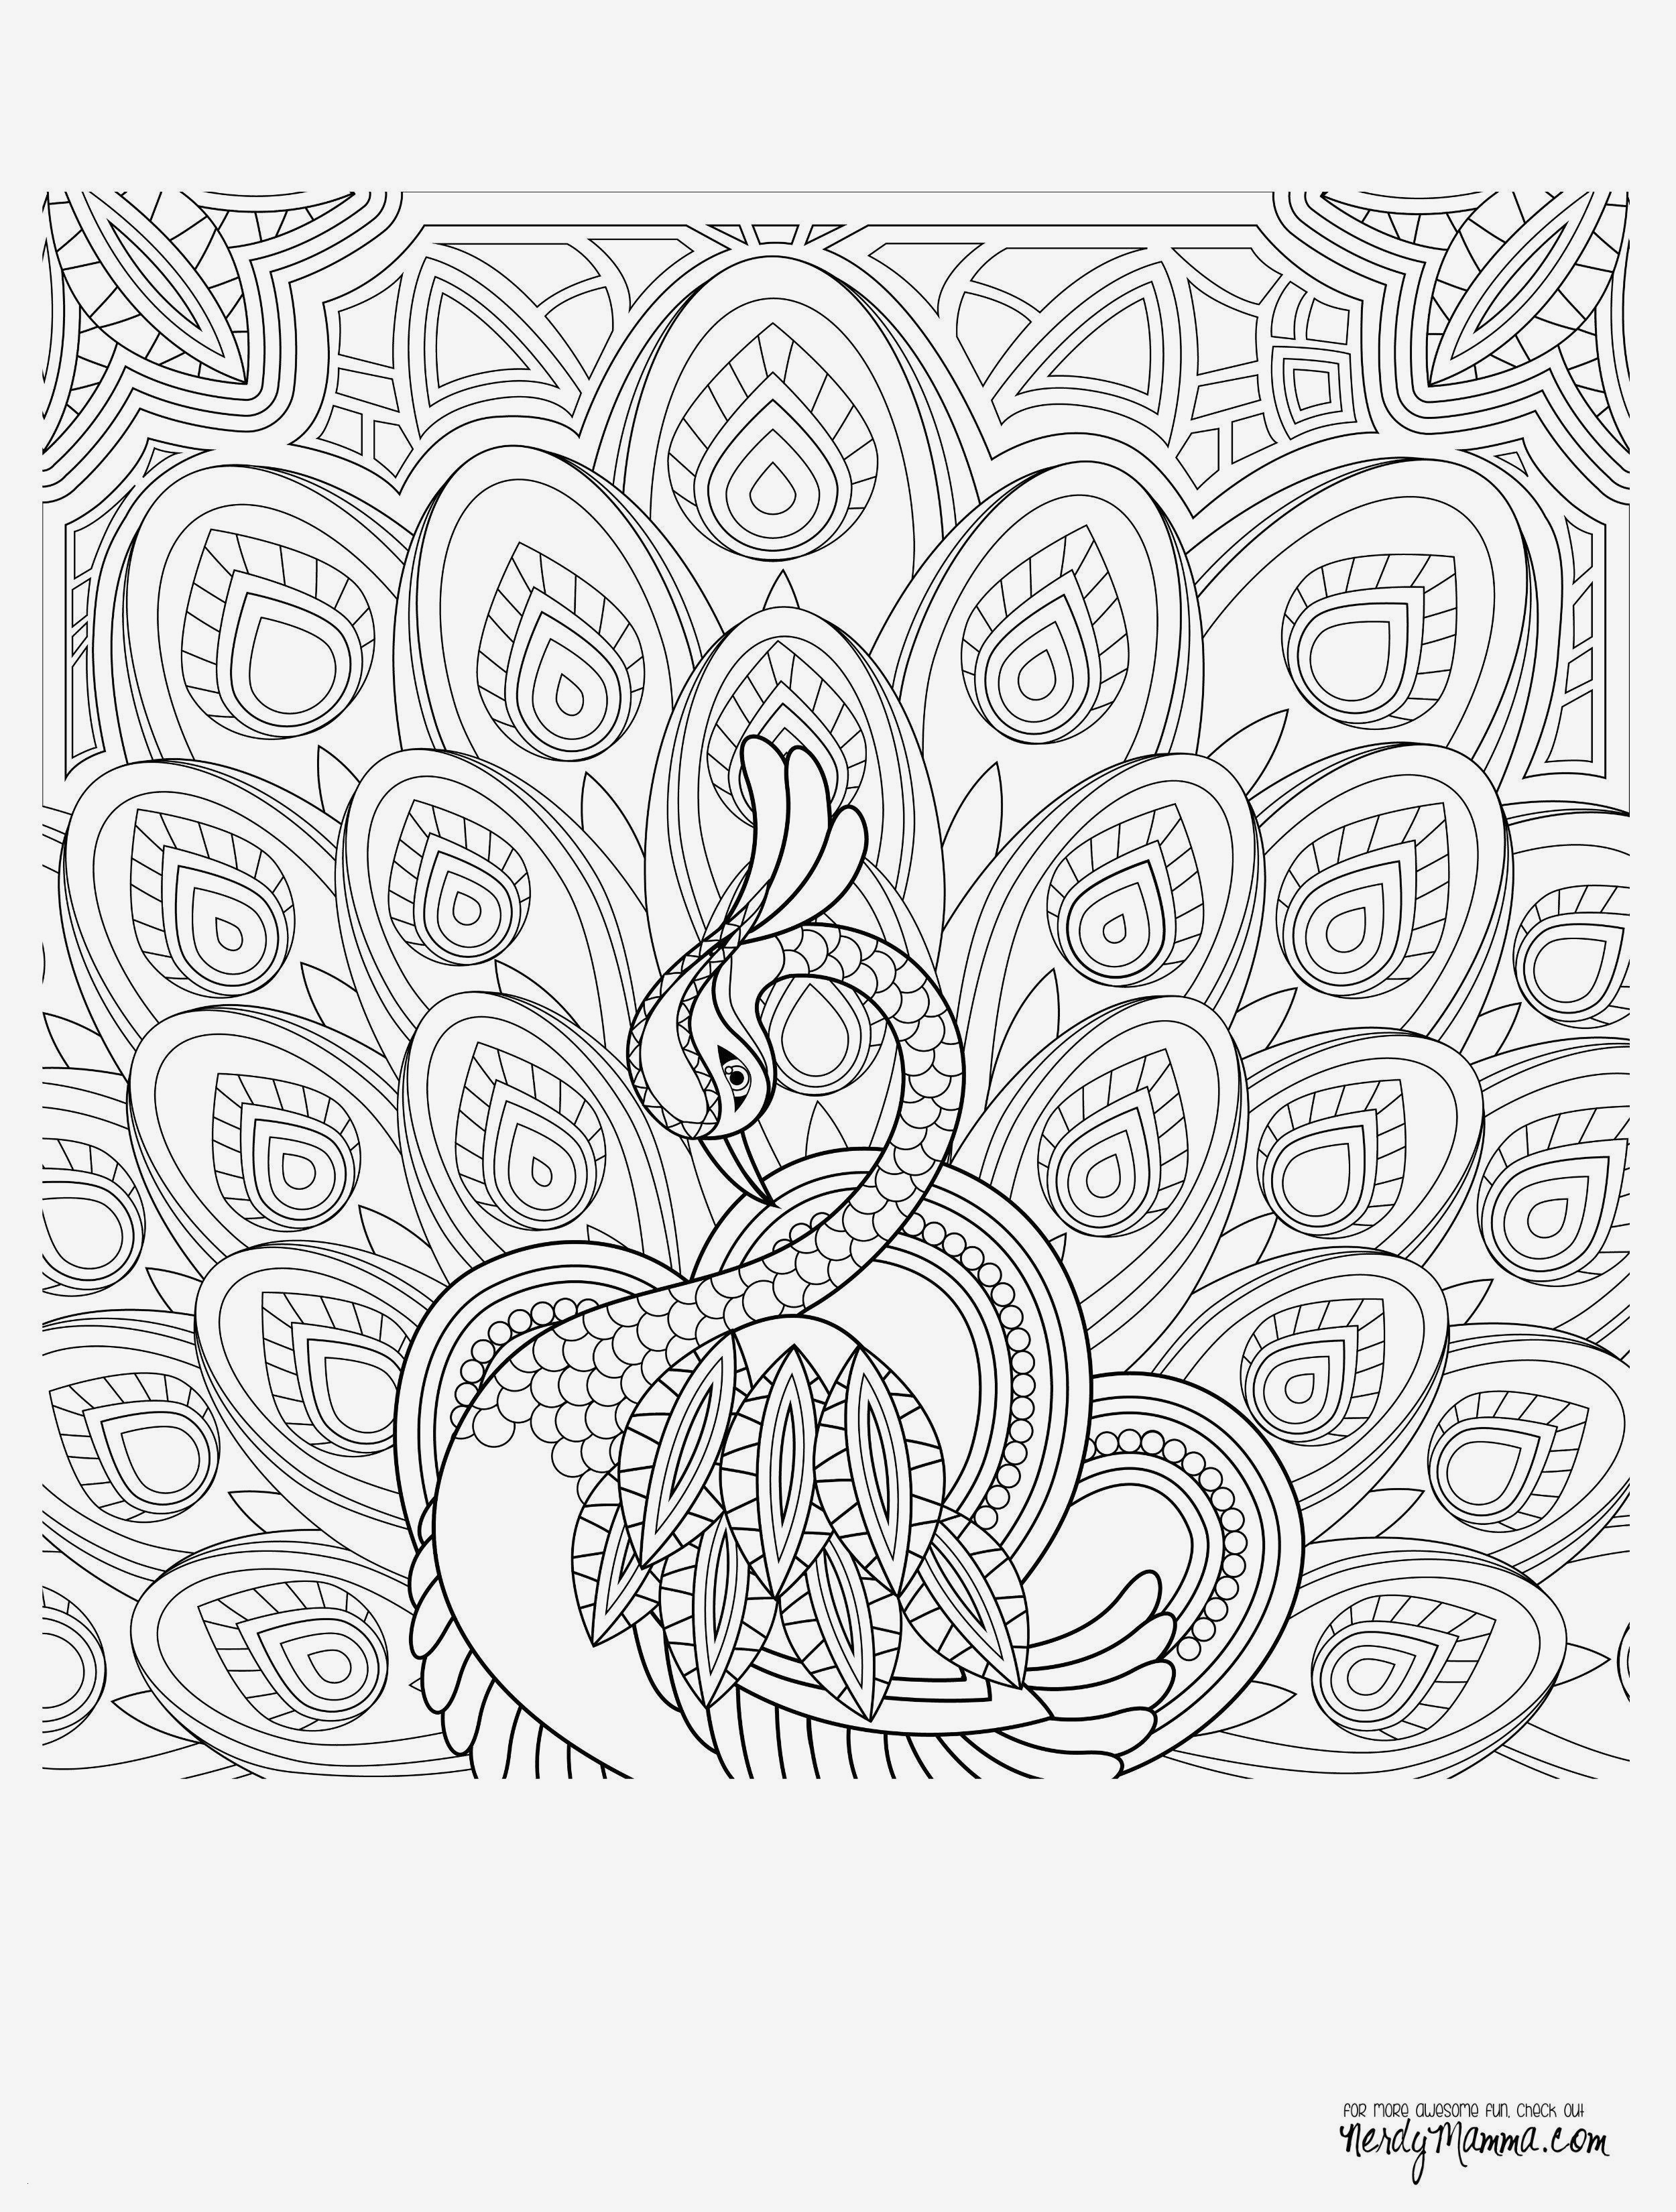 coloring pages 4th of july printable Download-Eagle Coloring Pages Easy and Fun Bald Eagle Coloring Page 21csb Eagle Coloring Pages Best 12-r